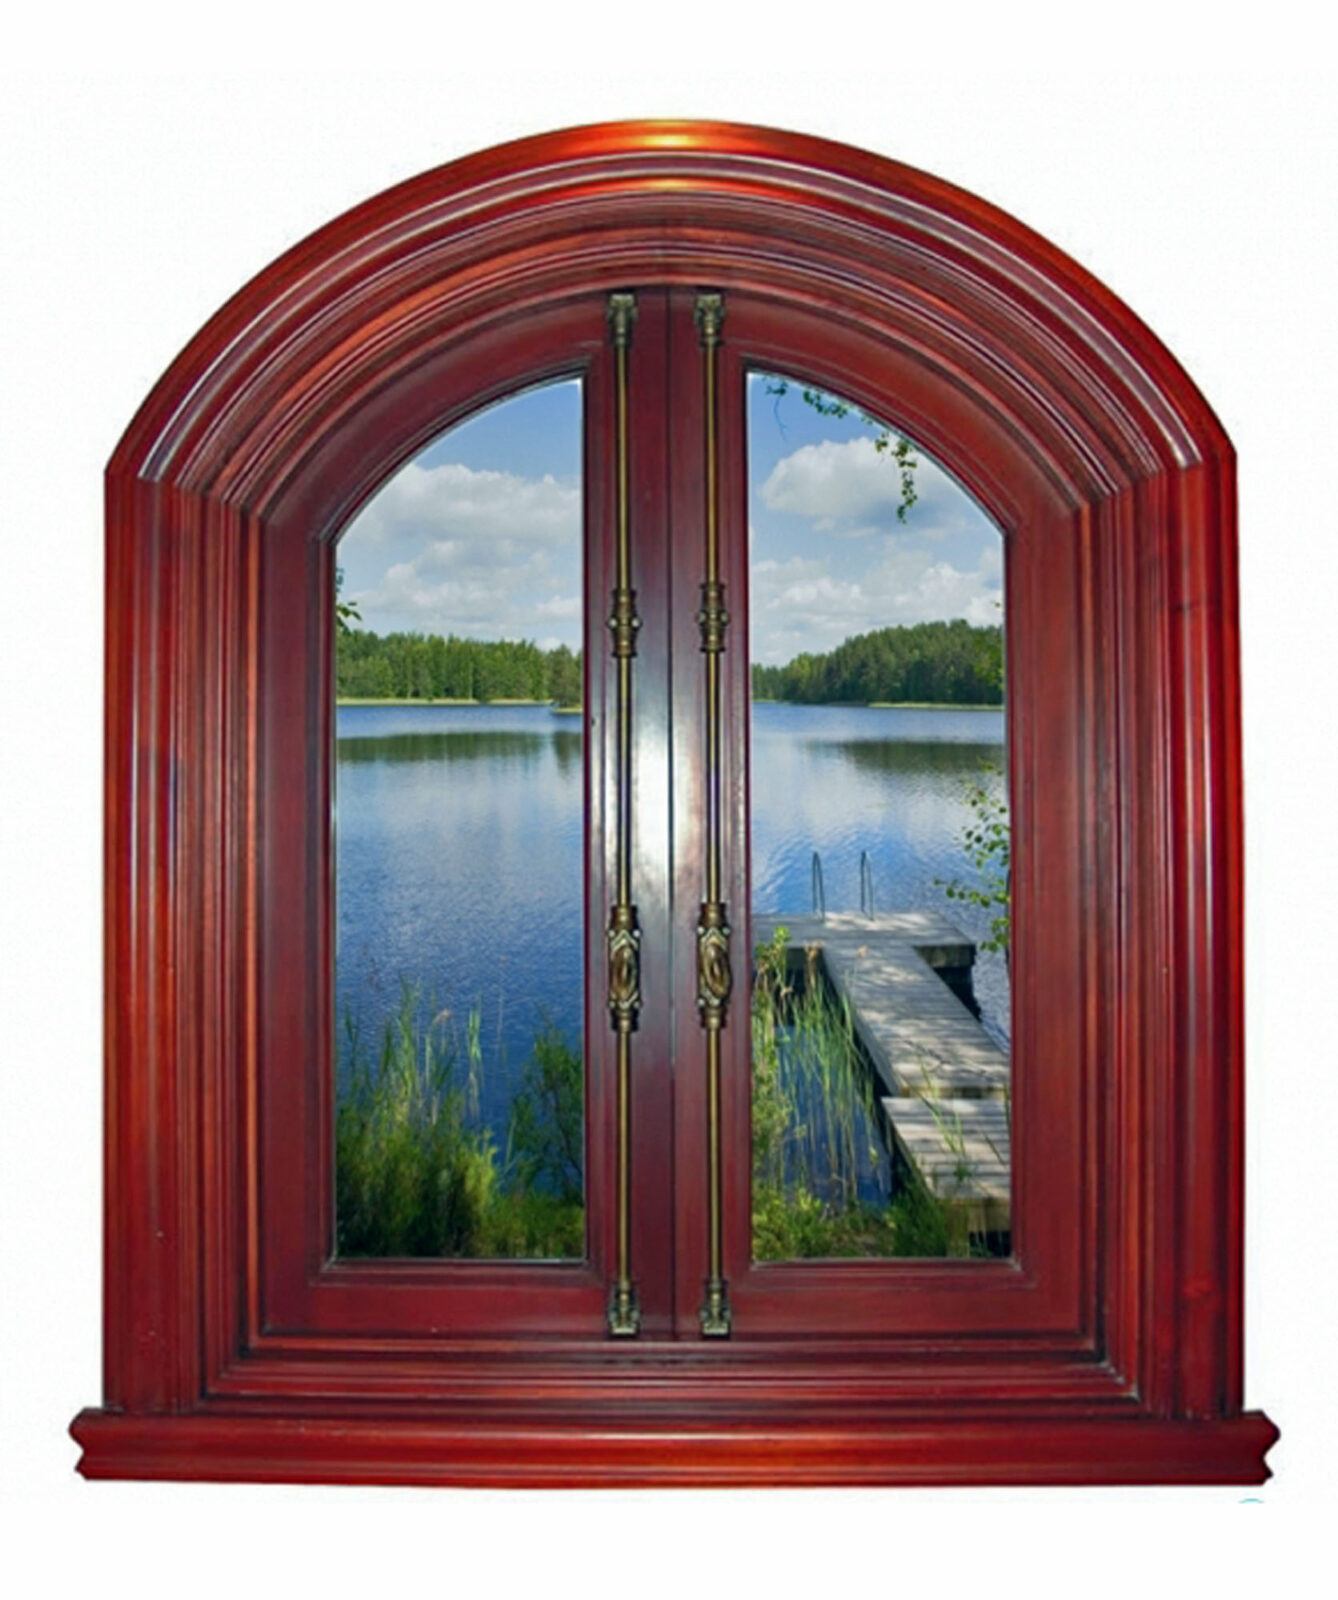 MODIGLIANI MAHOGANY WINDOW